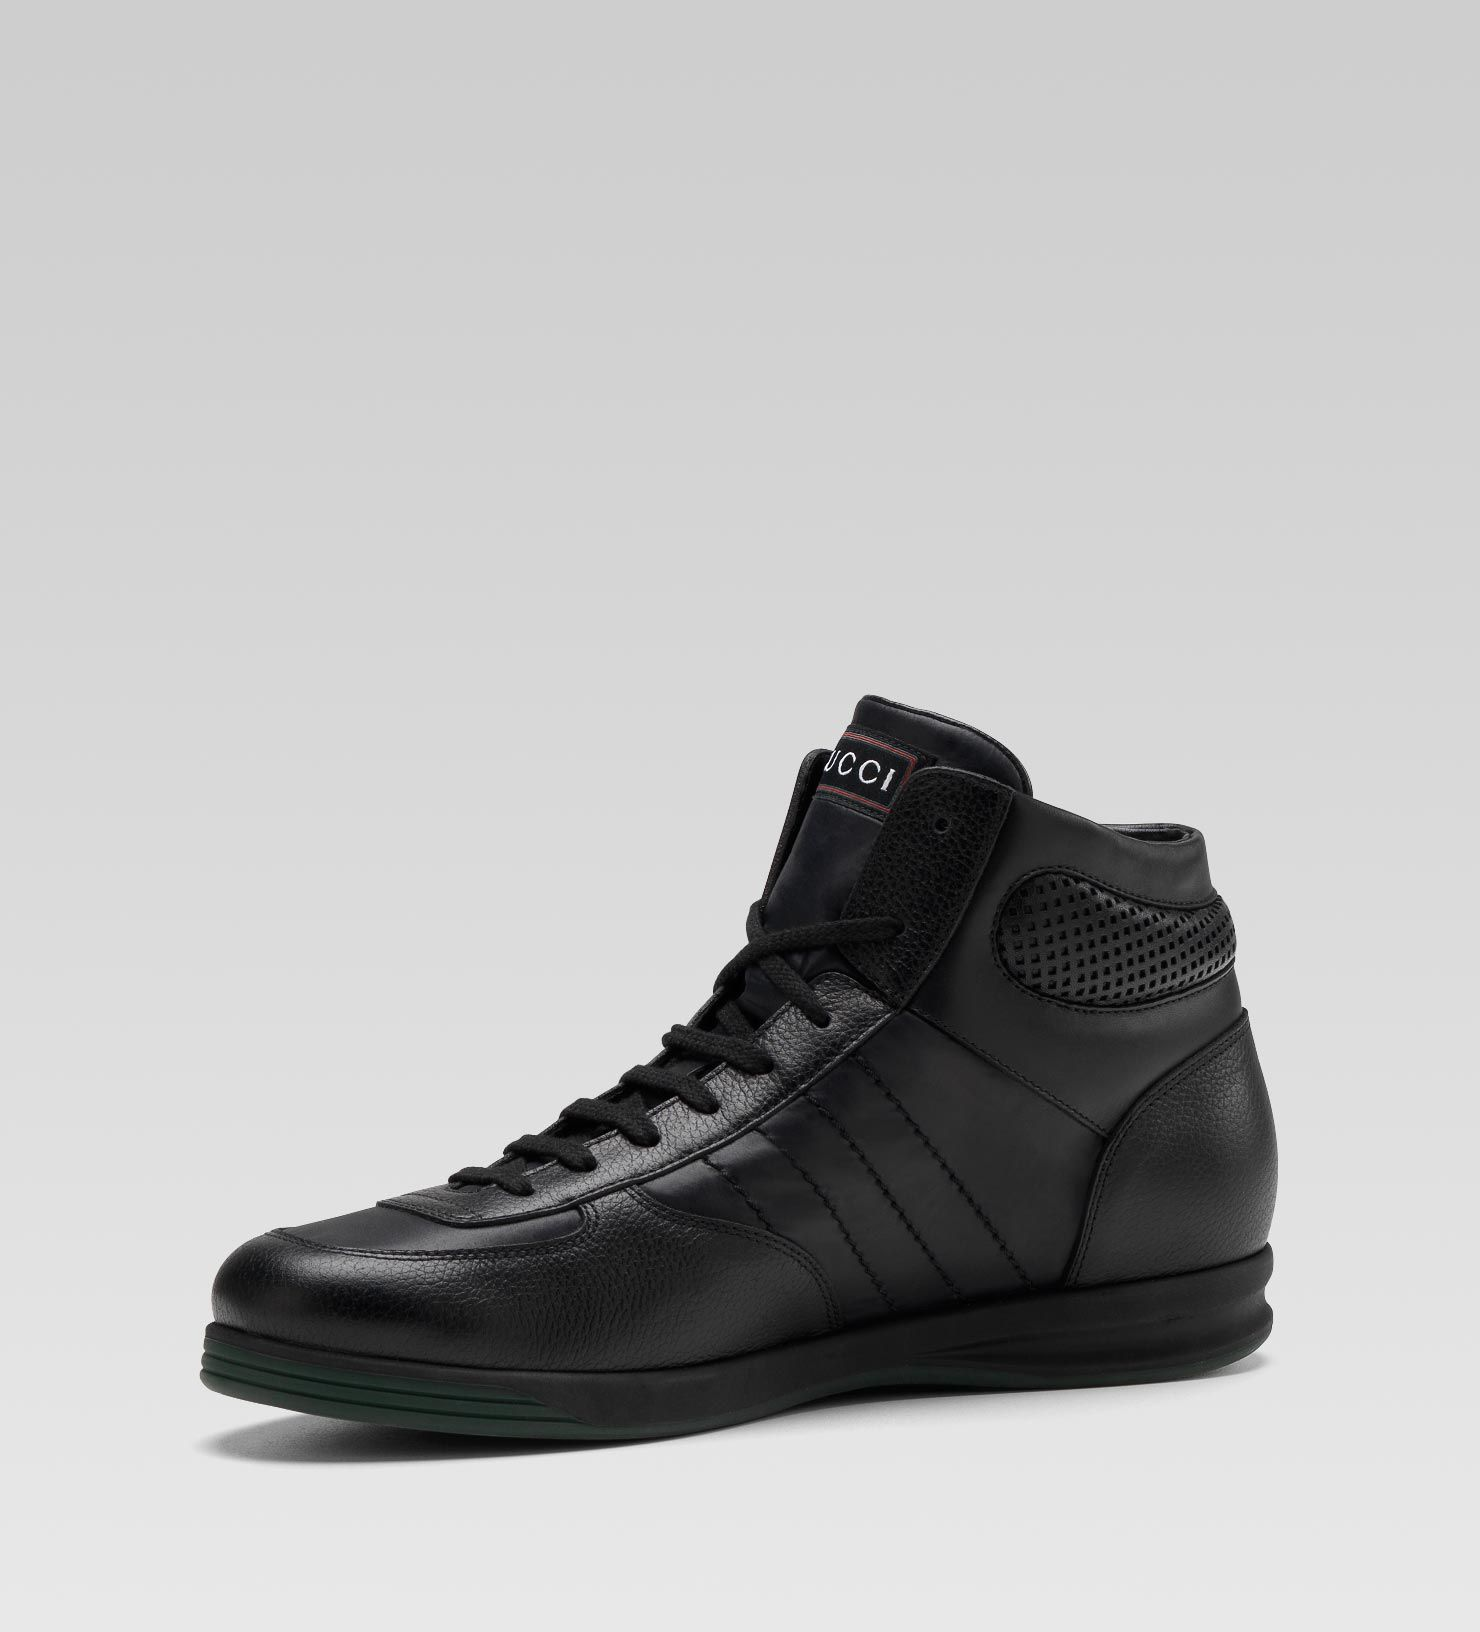 3d82b9e86bdd Gucci Sneakers 1984   Gucci men hi-top lace-up sneaker black leather ...